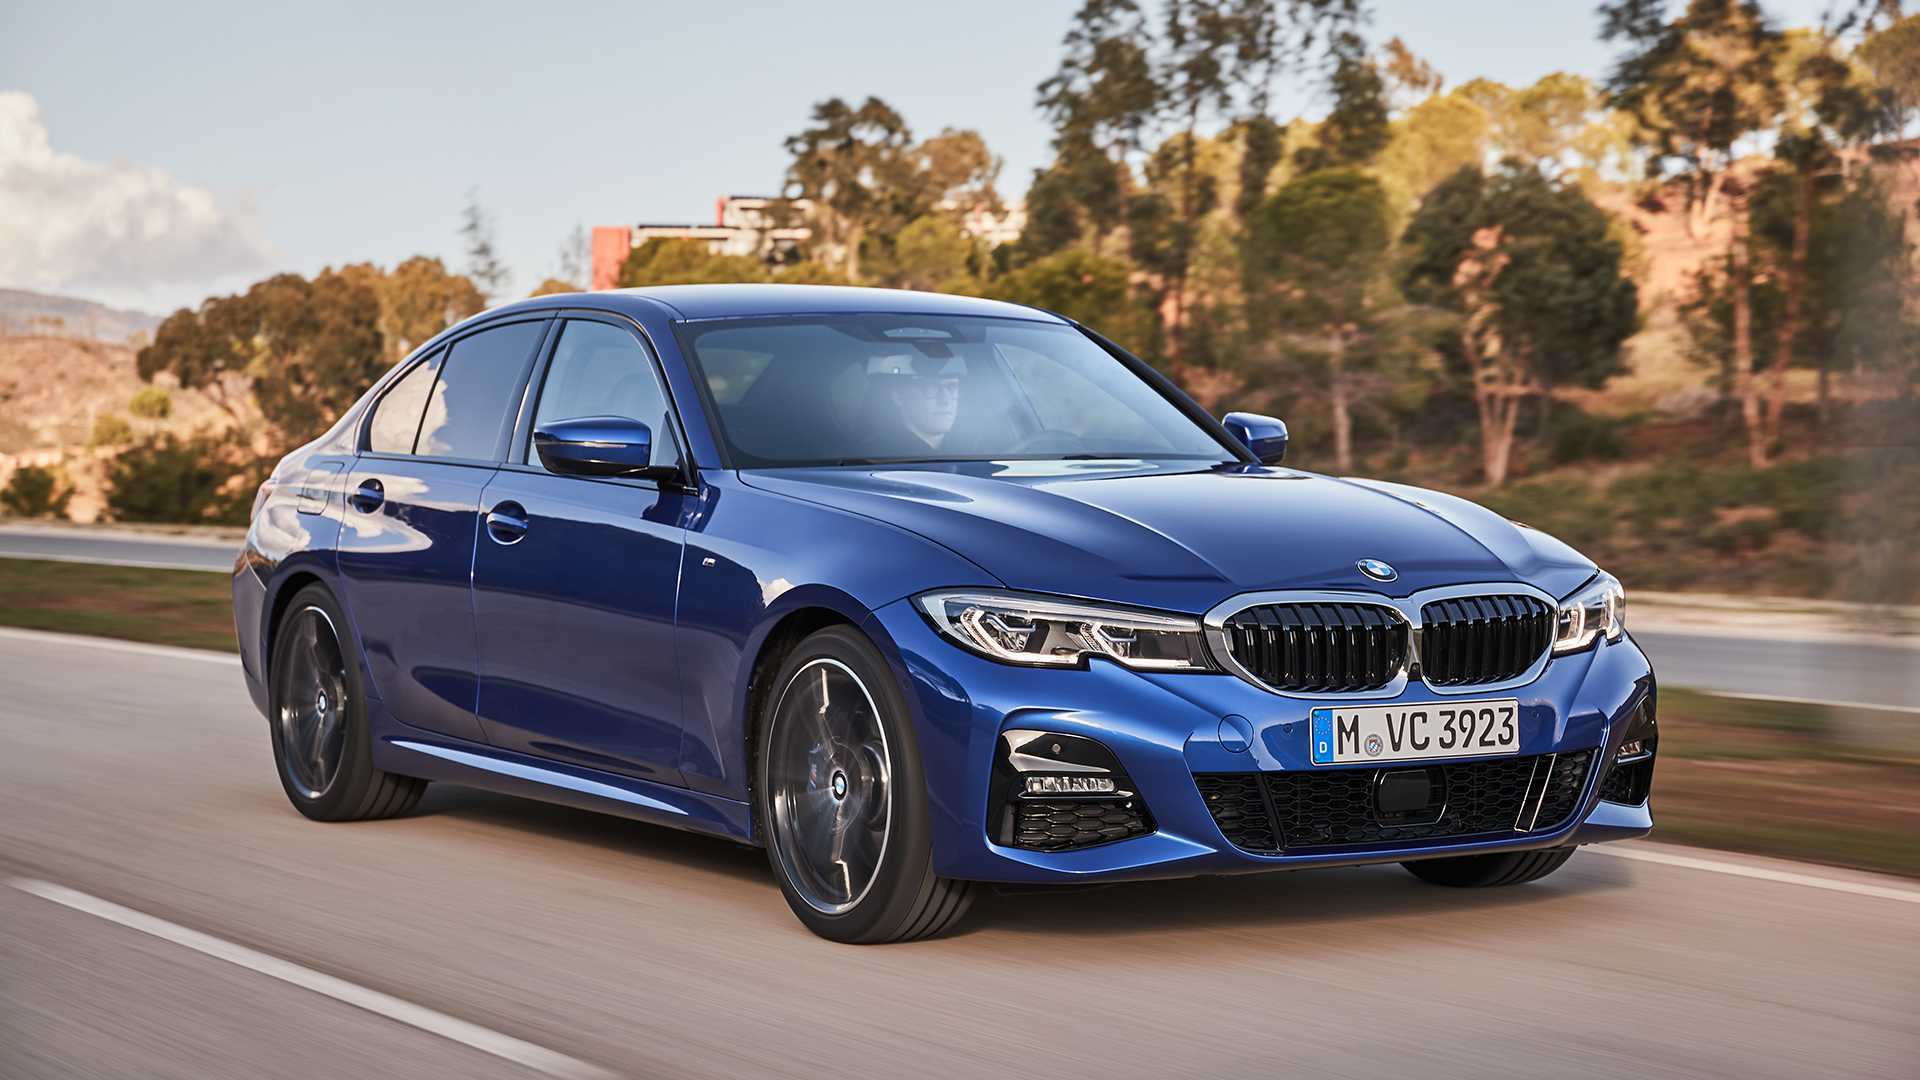 77 The Best 2019 BMW 3 Series Pricing